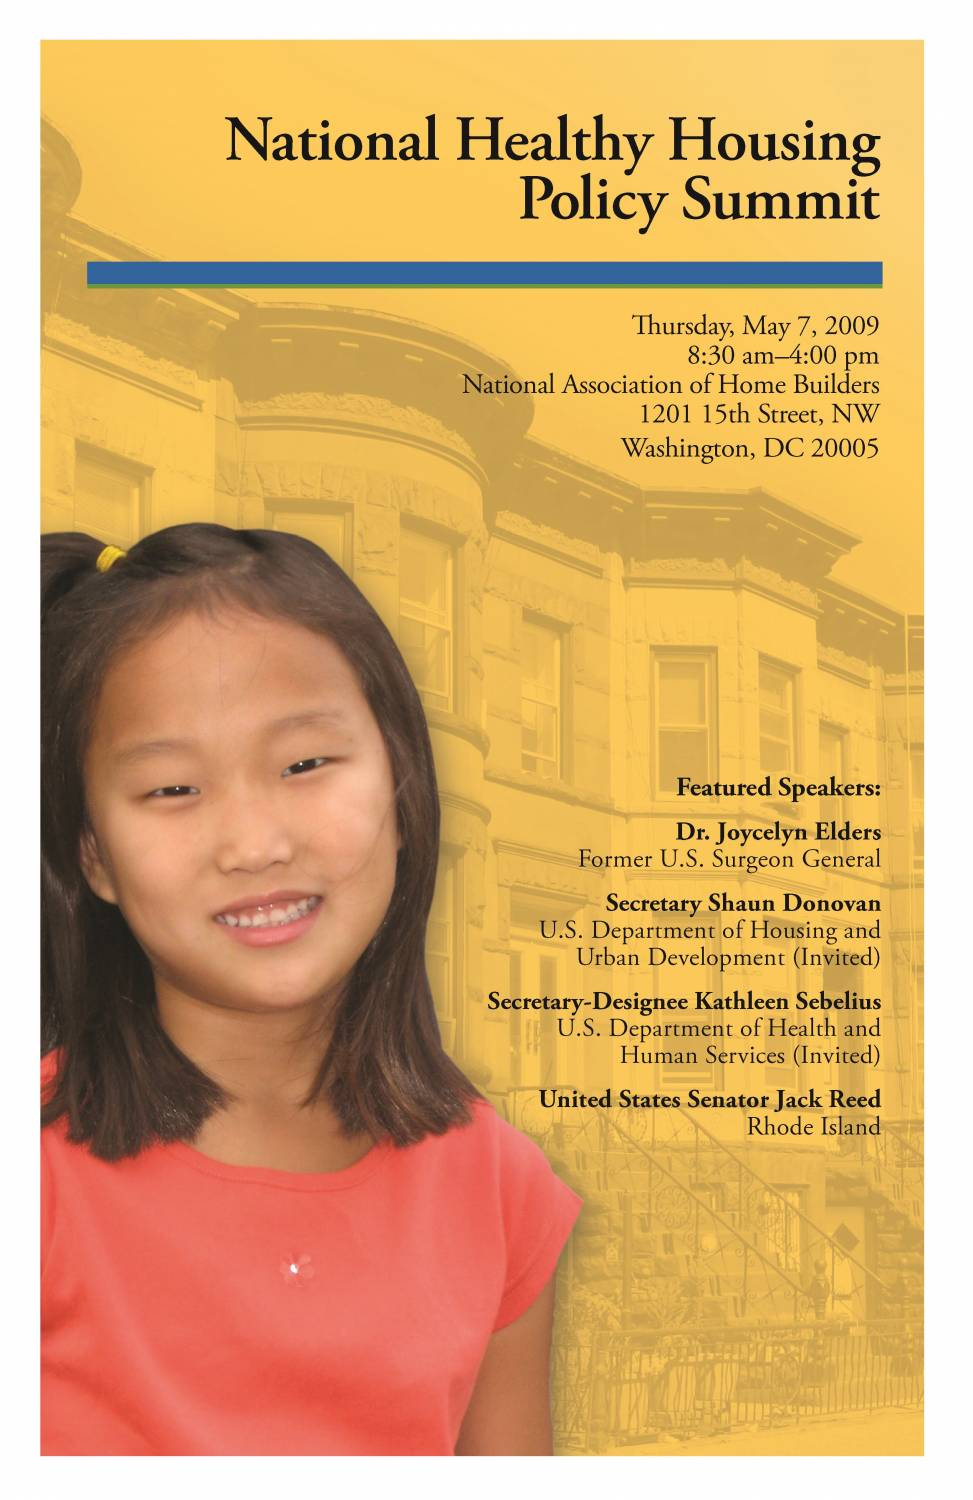 National Healthy Housing Policy Summit Program